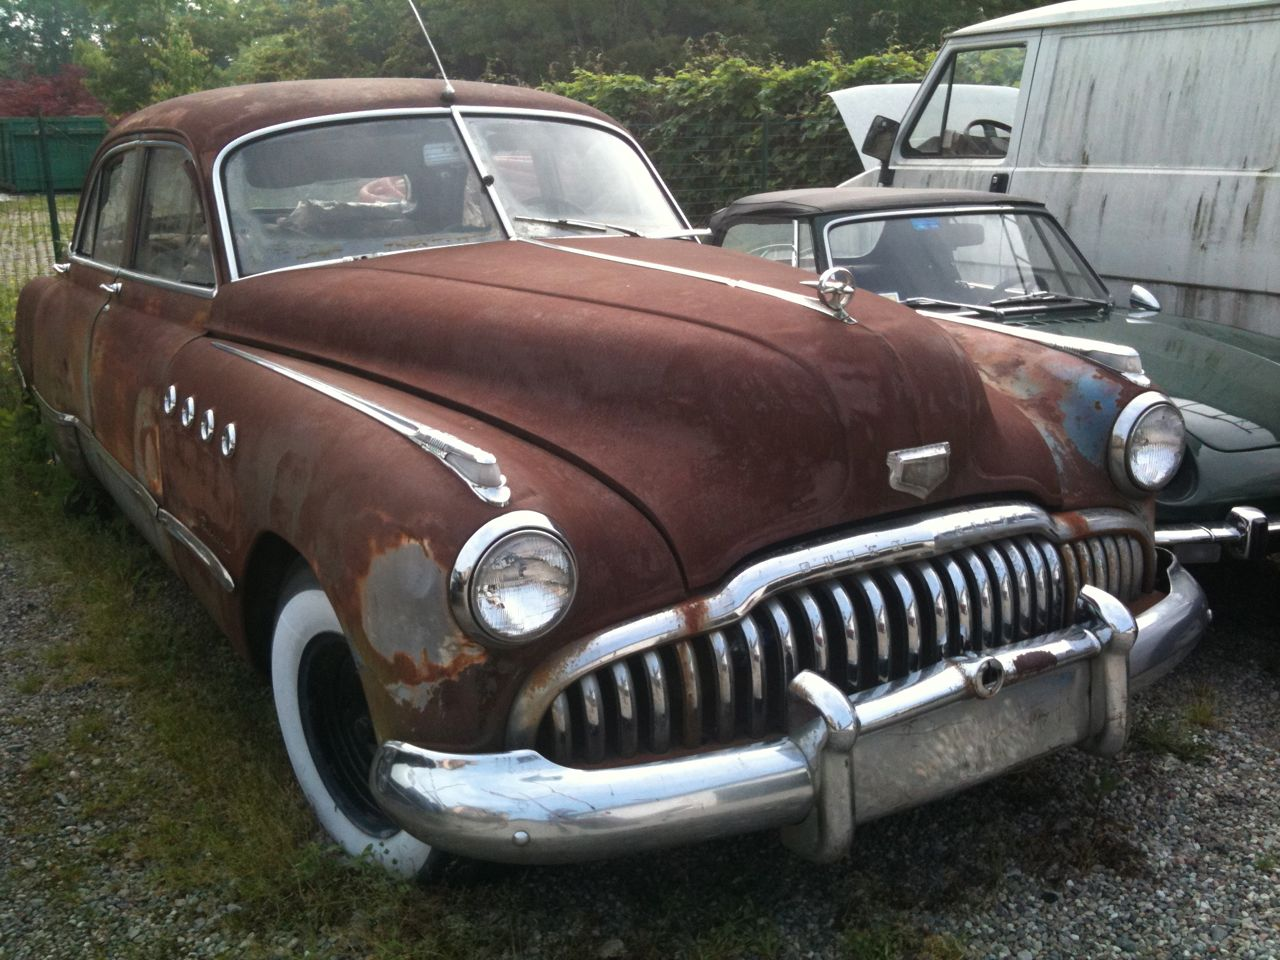 4Sale - 1949 Buick Roadmaster